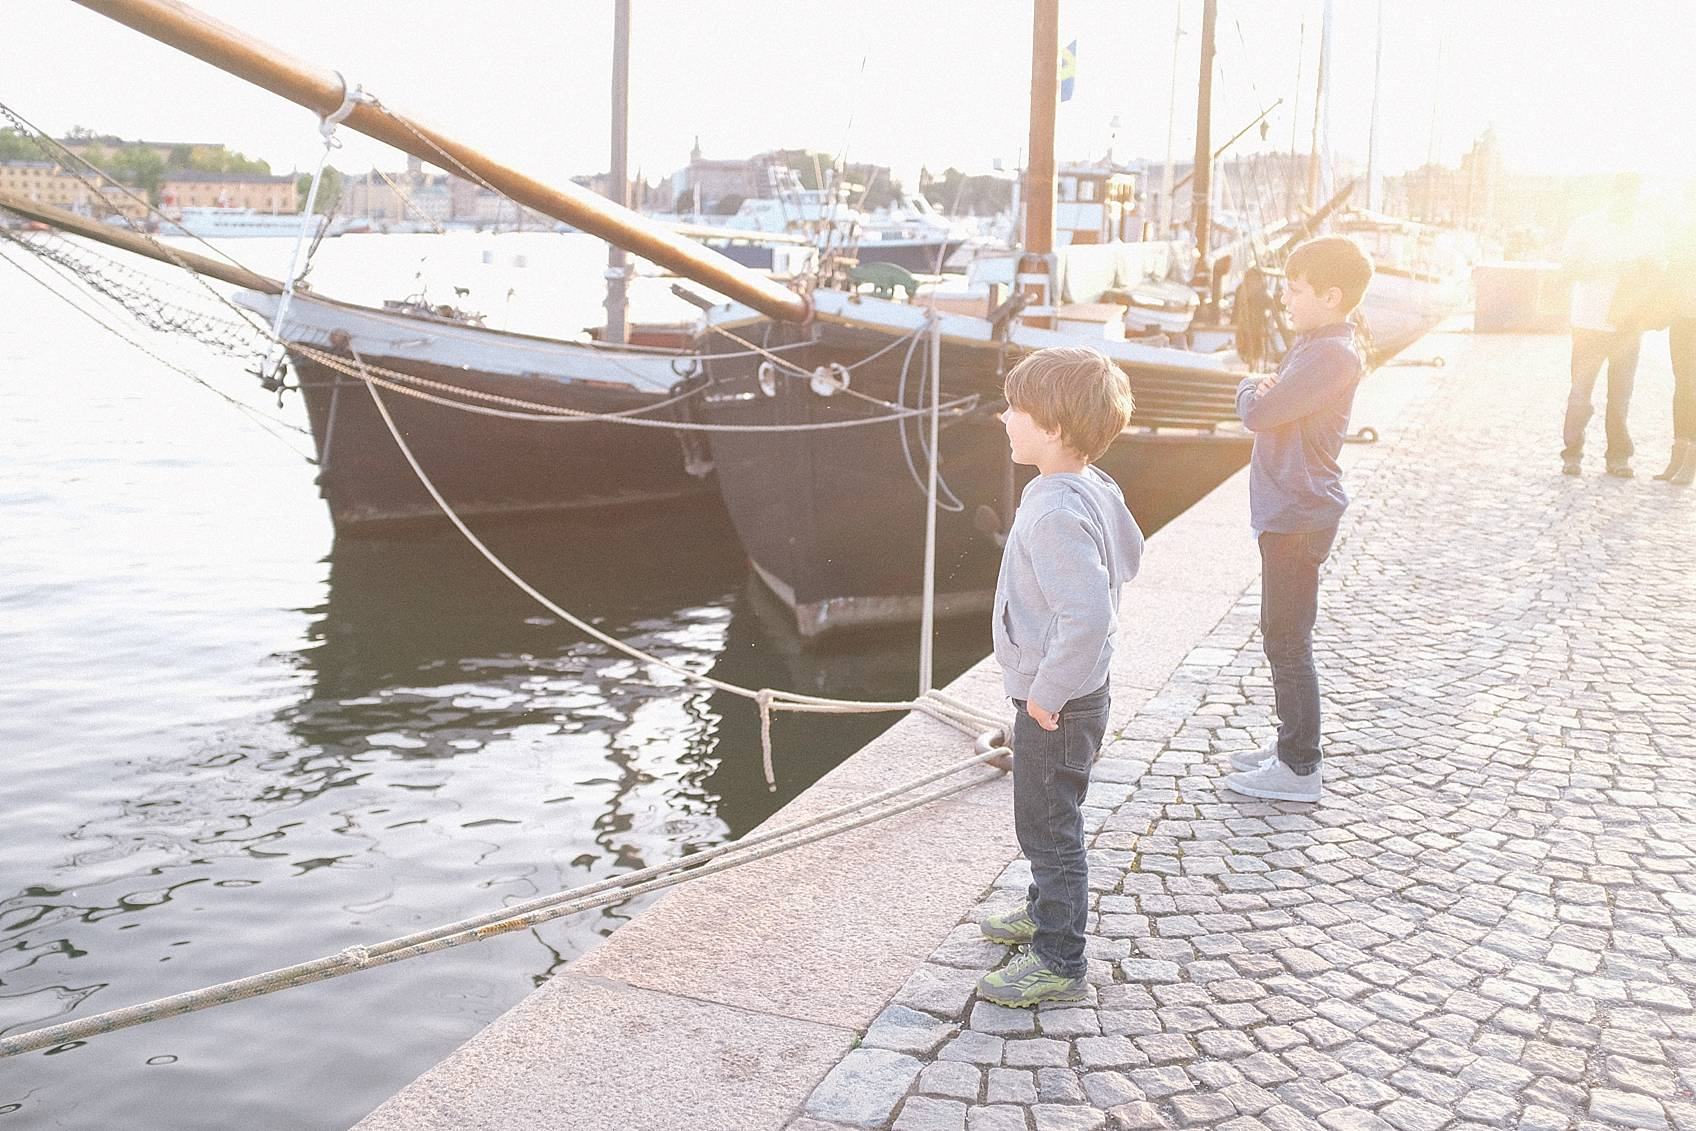 Photo tour of Stockholm: by the ocean ships boys watching a small boat go by